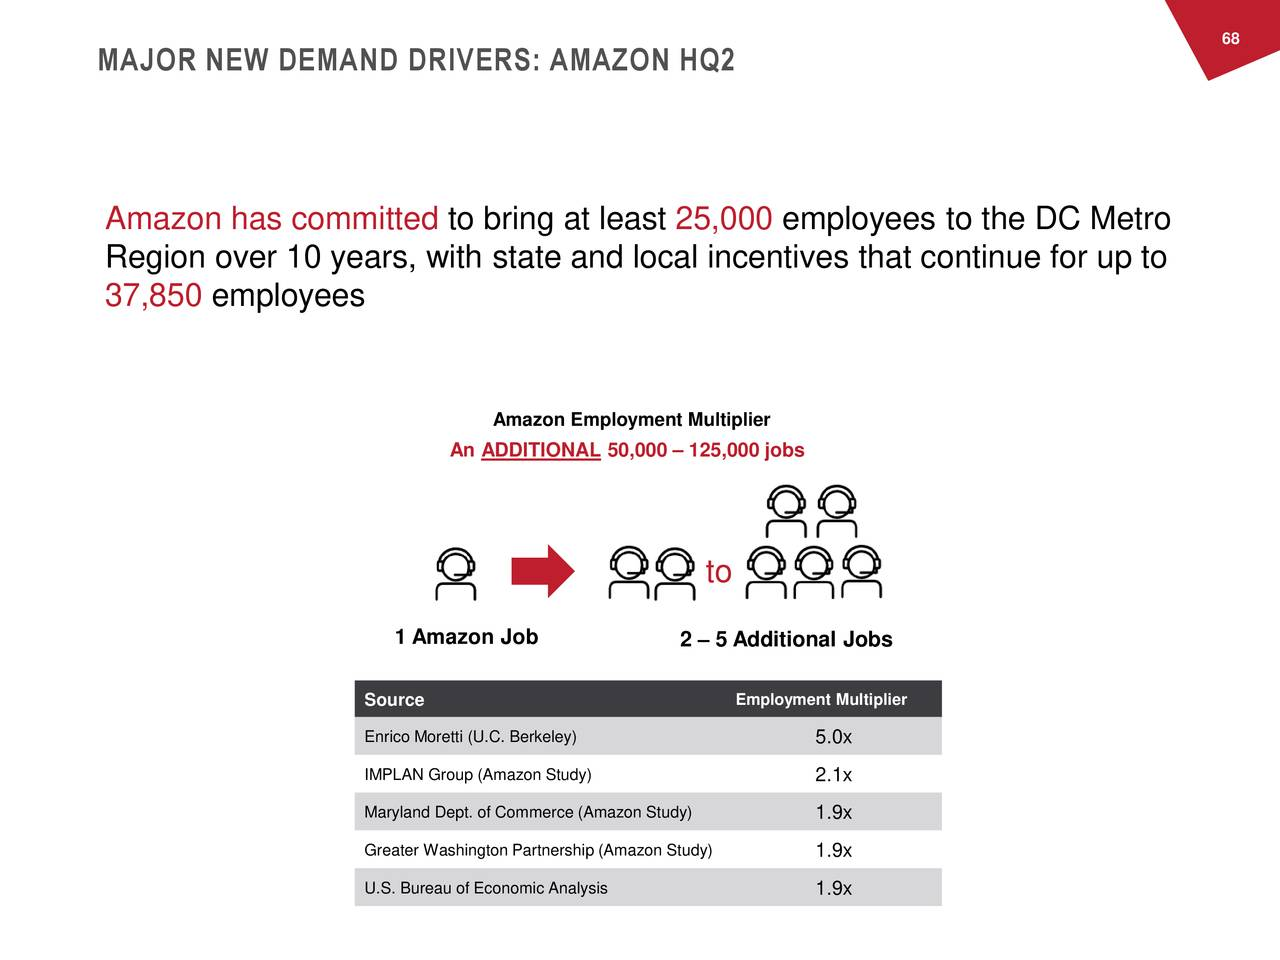 MAJOR NEW DEMAND DRIVERS: AMAZON HQ2 Amazon has committed to bring at least 25,000 employees to the DC Metro Region over 10 years, with state and local incentives that continue for up to 37,850 employees Amazon Employment Multiplier An ADDITIONAL 50,000 – 125,000 jobs to 1 Amazon Job 2 – 5 Additional Jobs Source Employment Multiplier Enrico Moretti (U.C. Berkeley) 5.0x IMPLAN Group (Amazon Study) 2.1x Maryland Dept. of Commerce (Amazon Study) 1.9x Greater Washington Partnership (Amazon Study)1.9x U.S. Bureau of Economic Analysis 1.9x